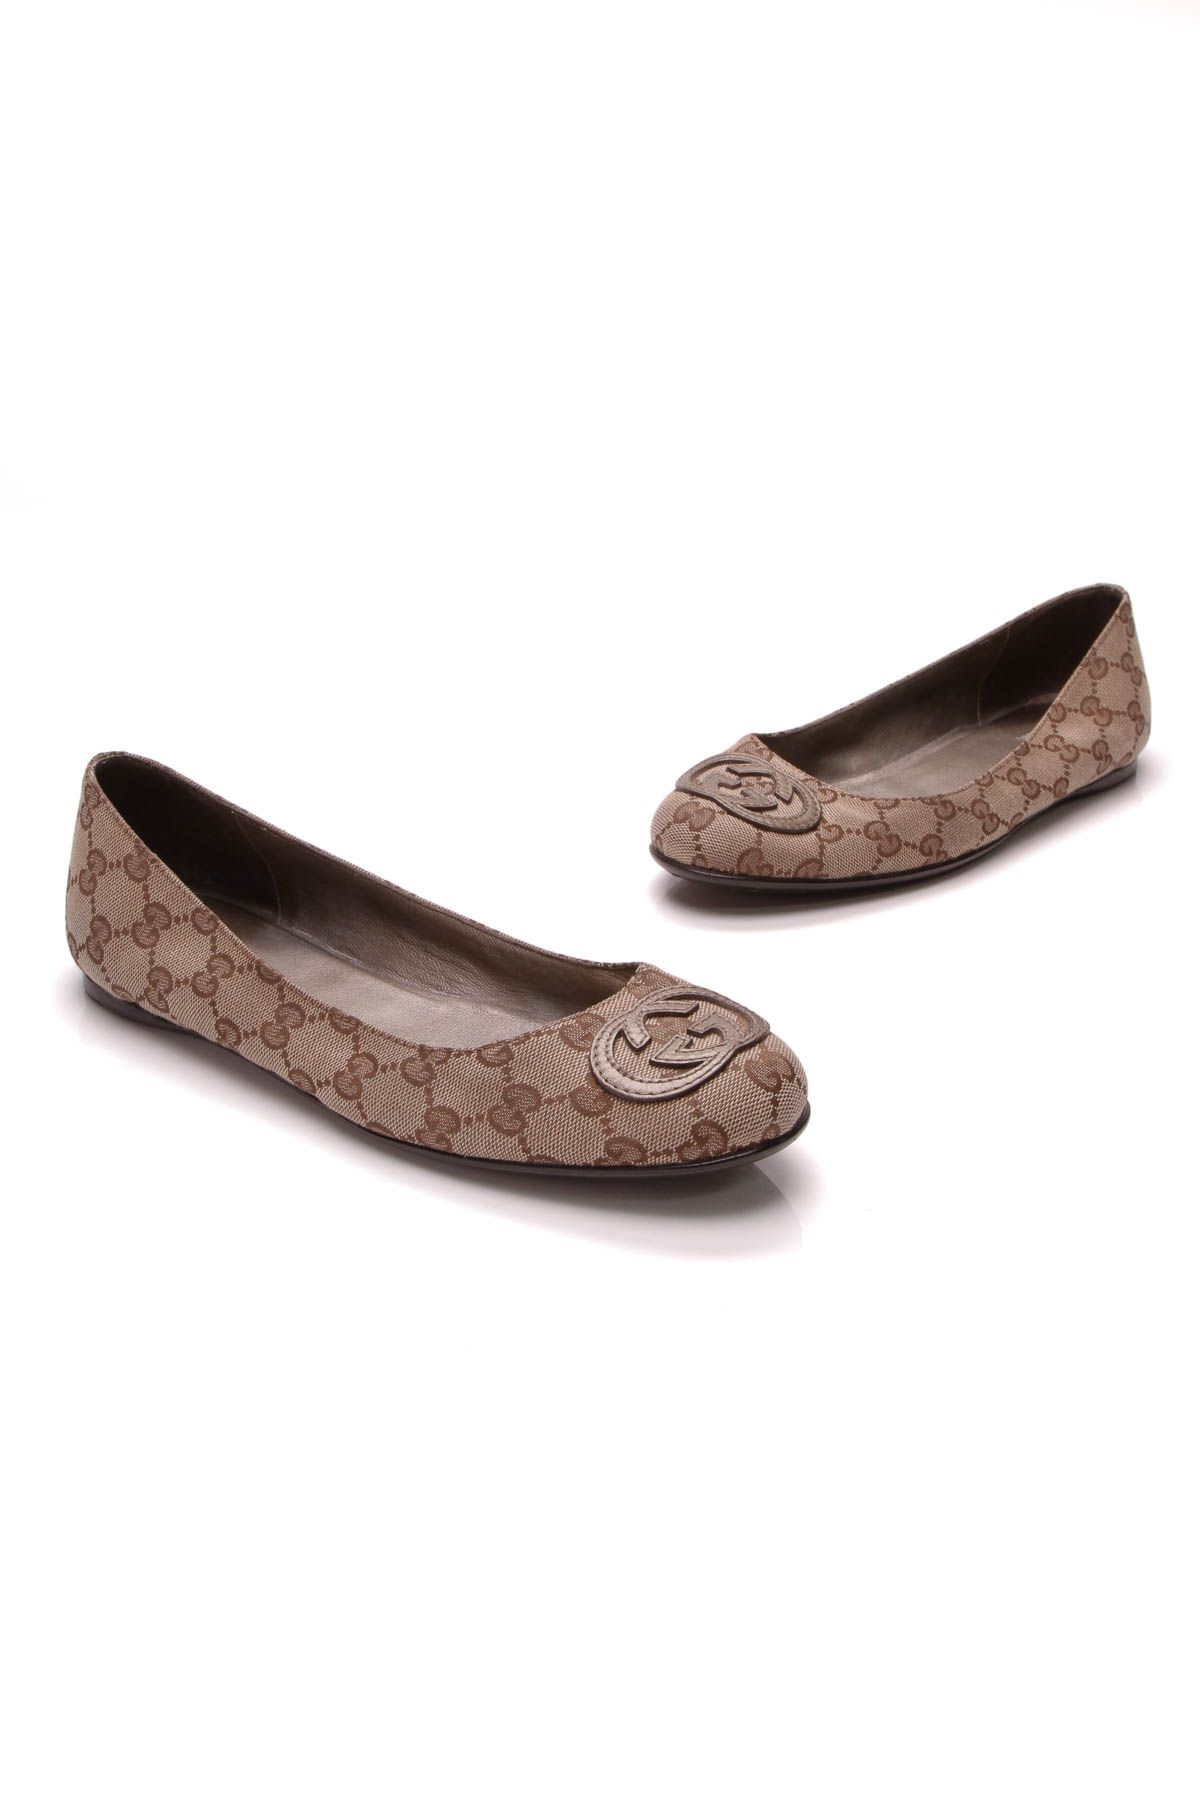 fada0f380 GG Ballerina Flats - Signature Canvas Size 38.5 in 2019